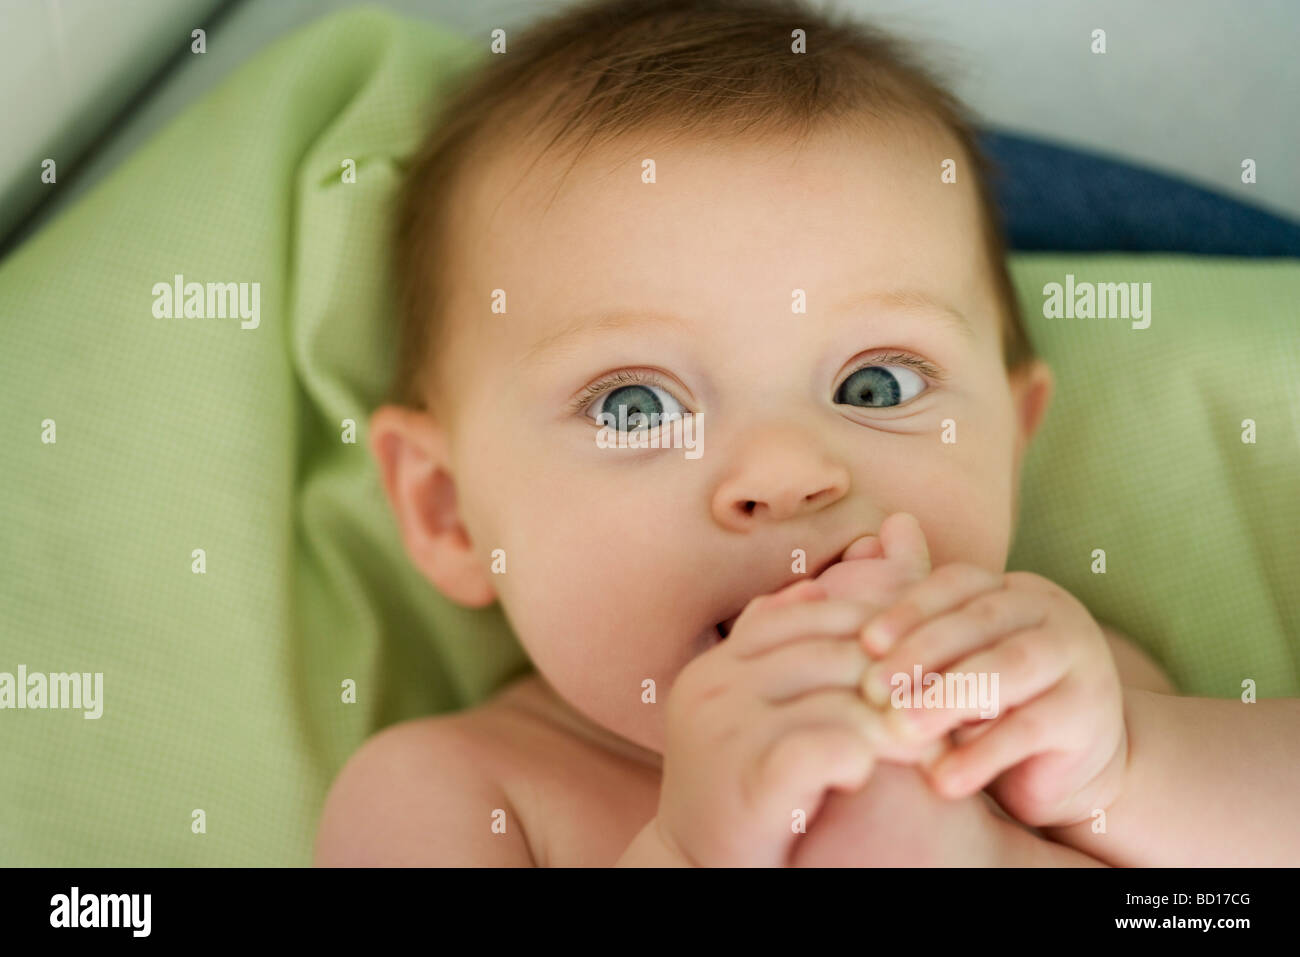 Baby with foot in mouth, close-up - Stock Image